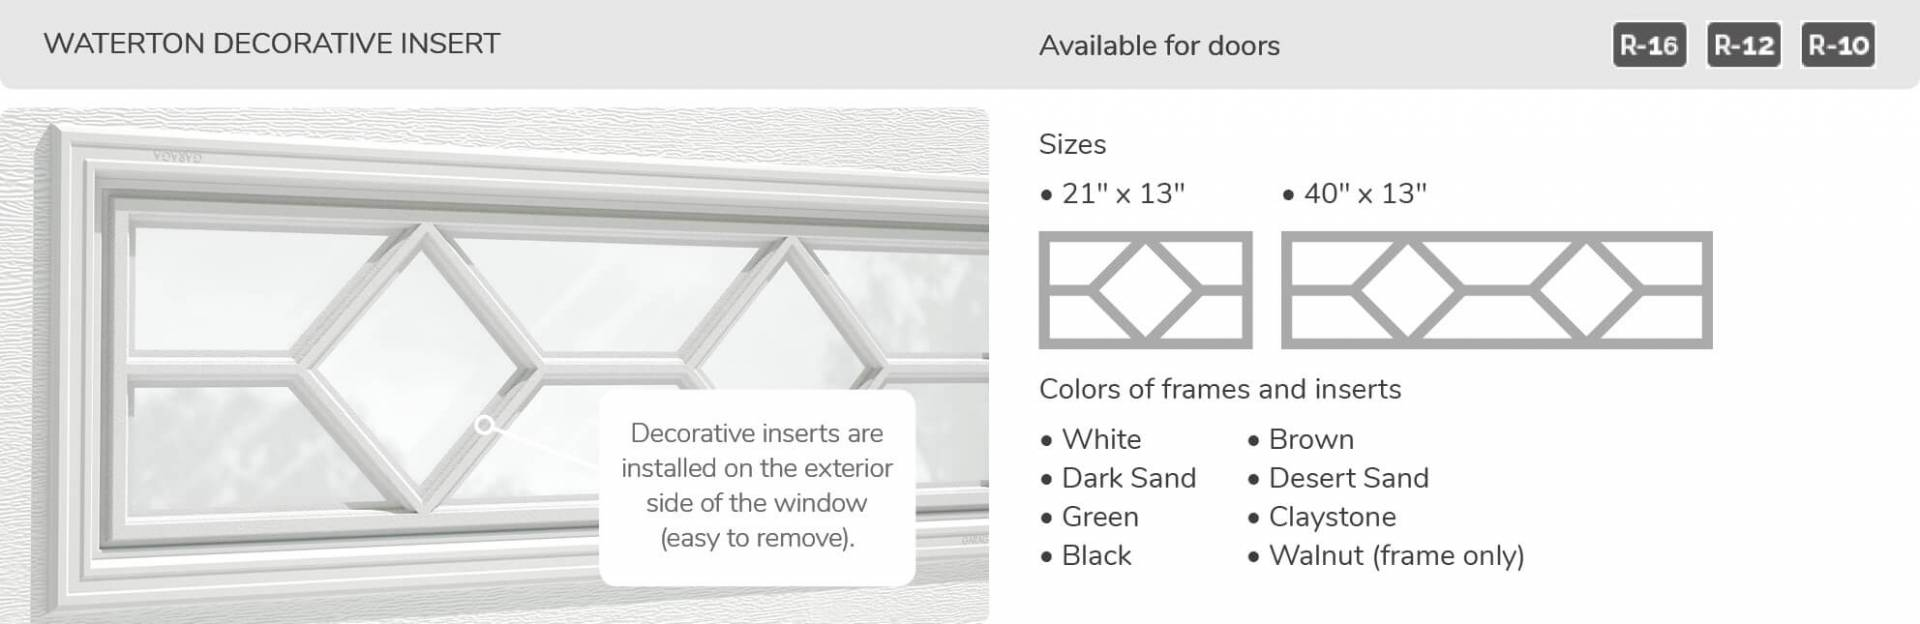 Waterton Decorative Inserts, 21' x 13' and 40' x 13', available for doors R-16, R-12, R-10